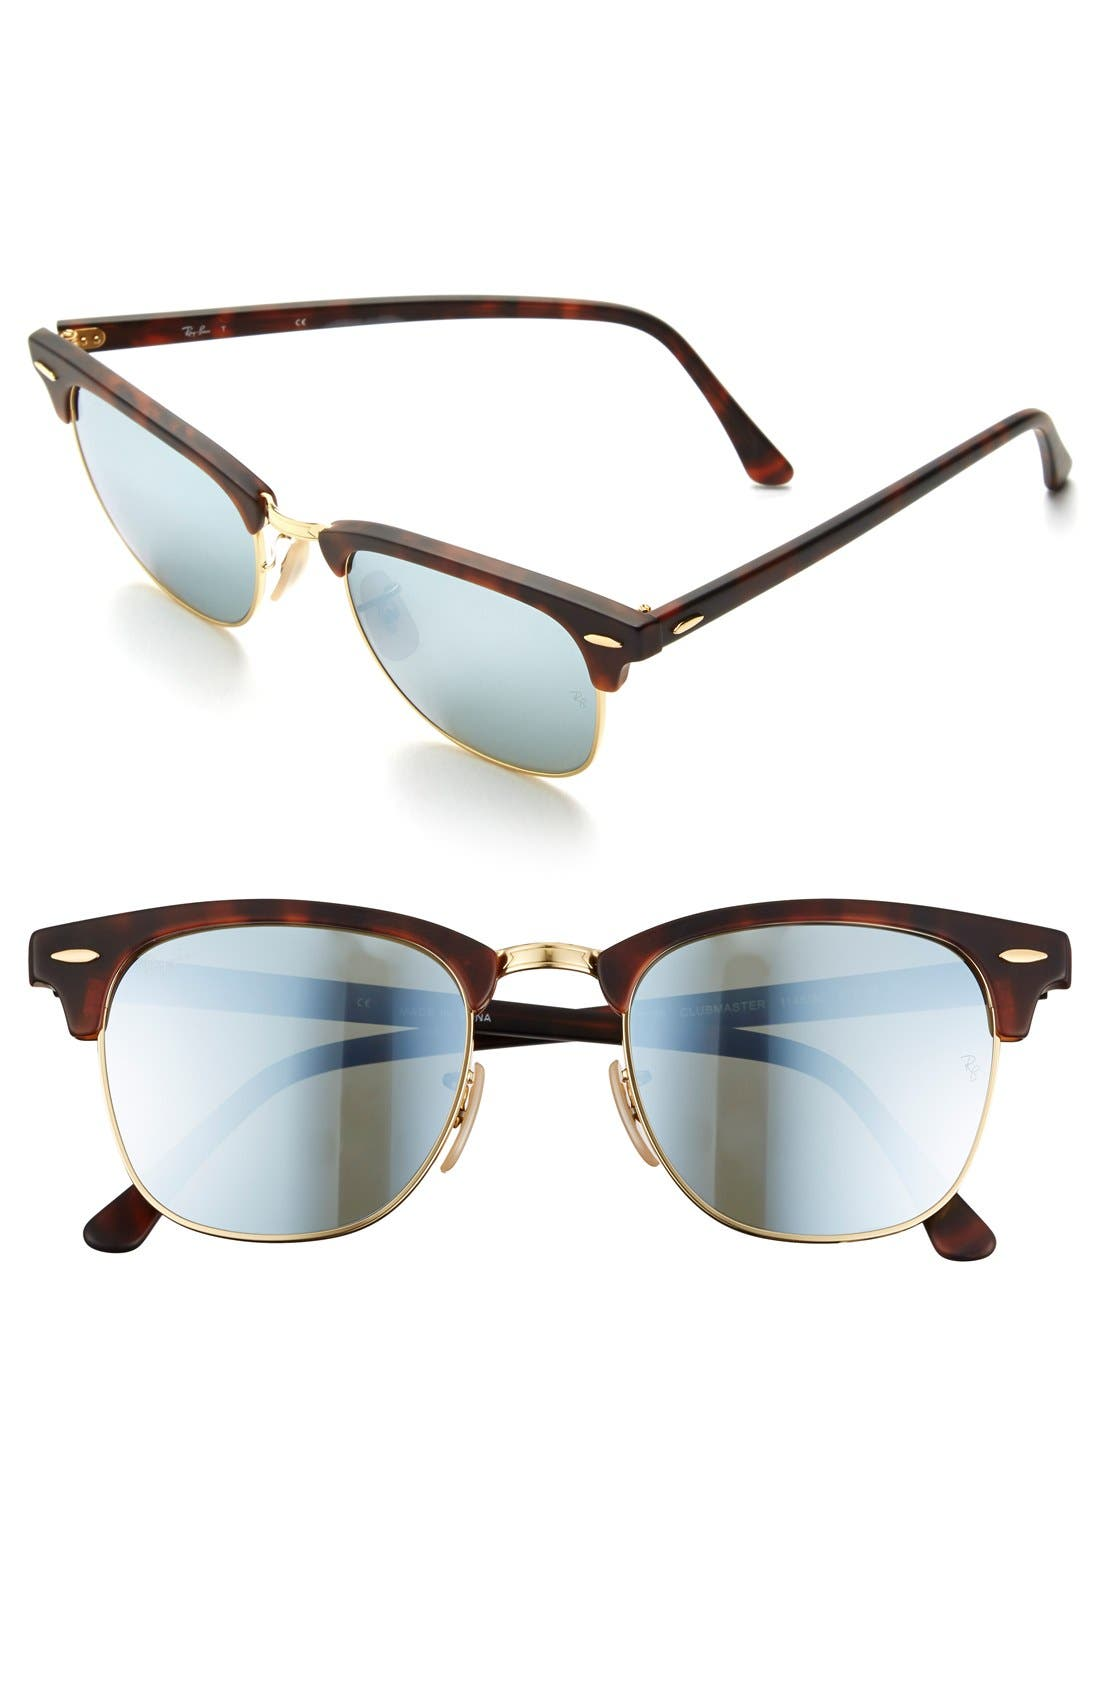 Ray-Ban Flash Clubmaster 51Mm Sunglasses -